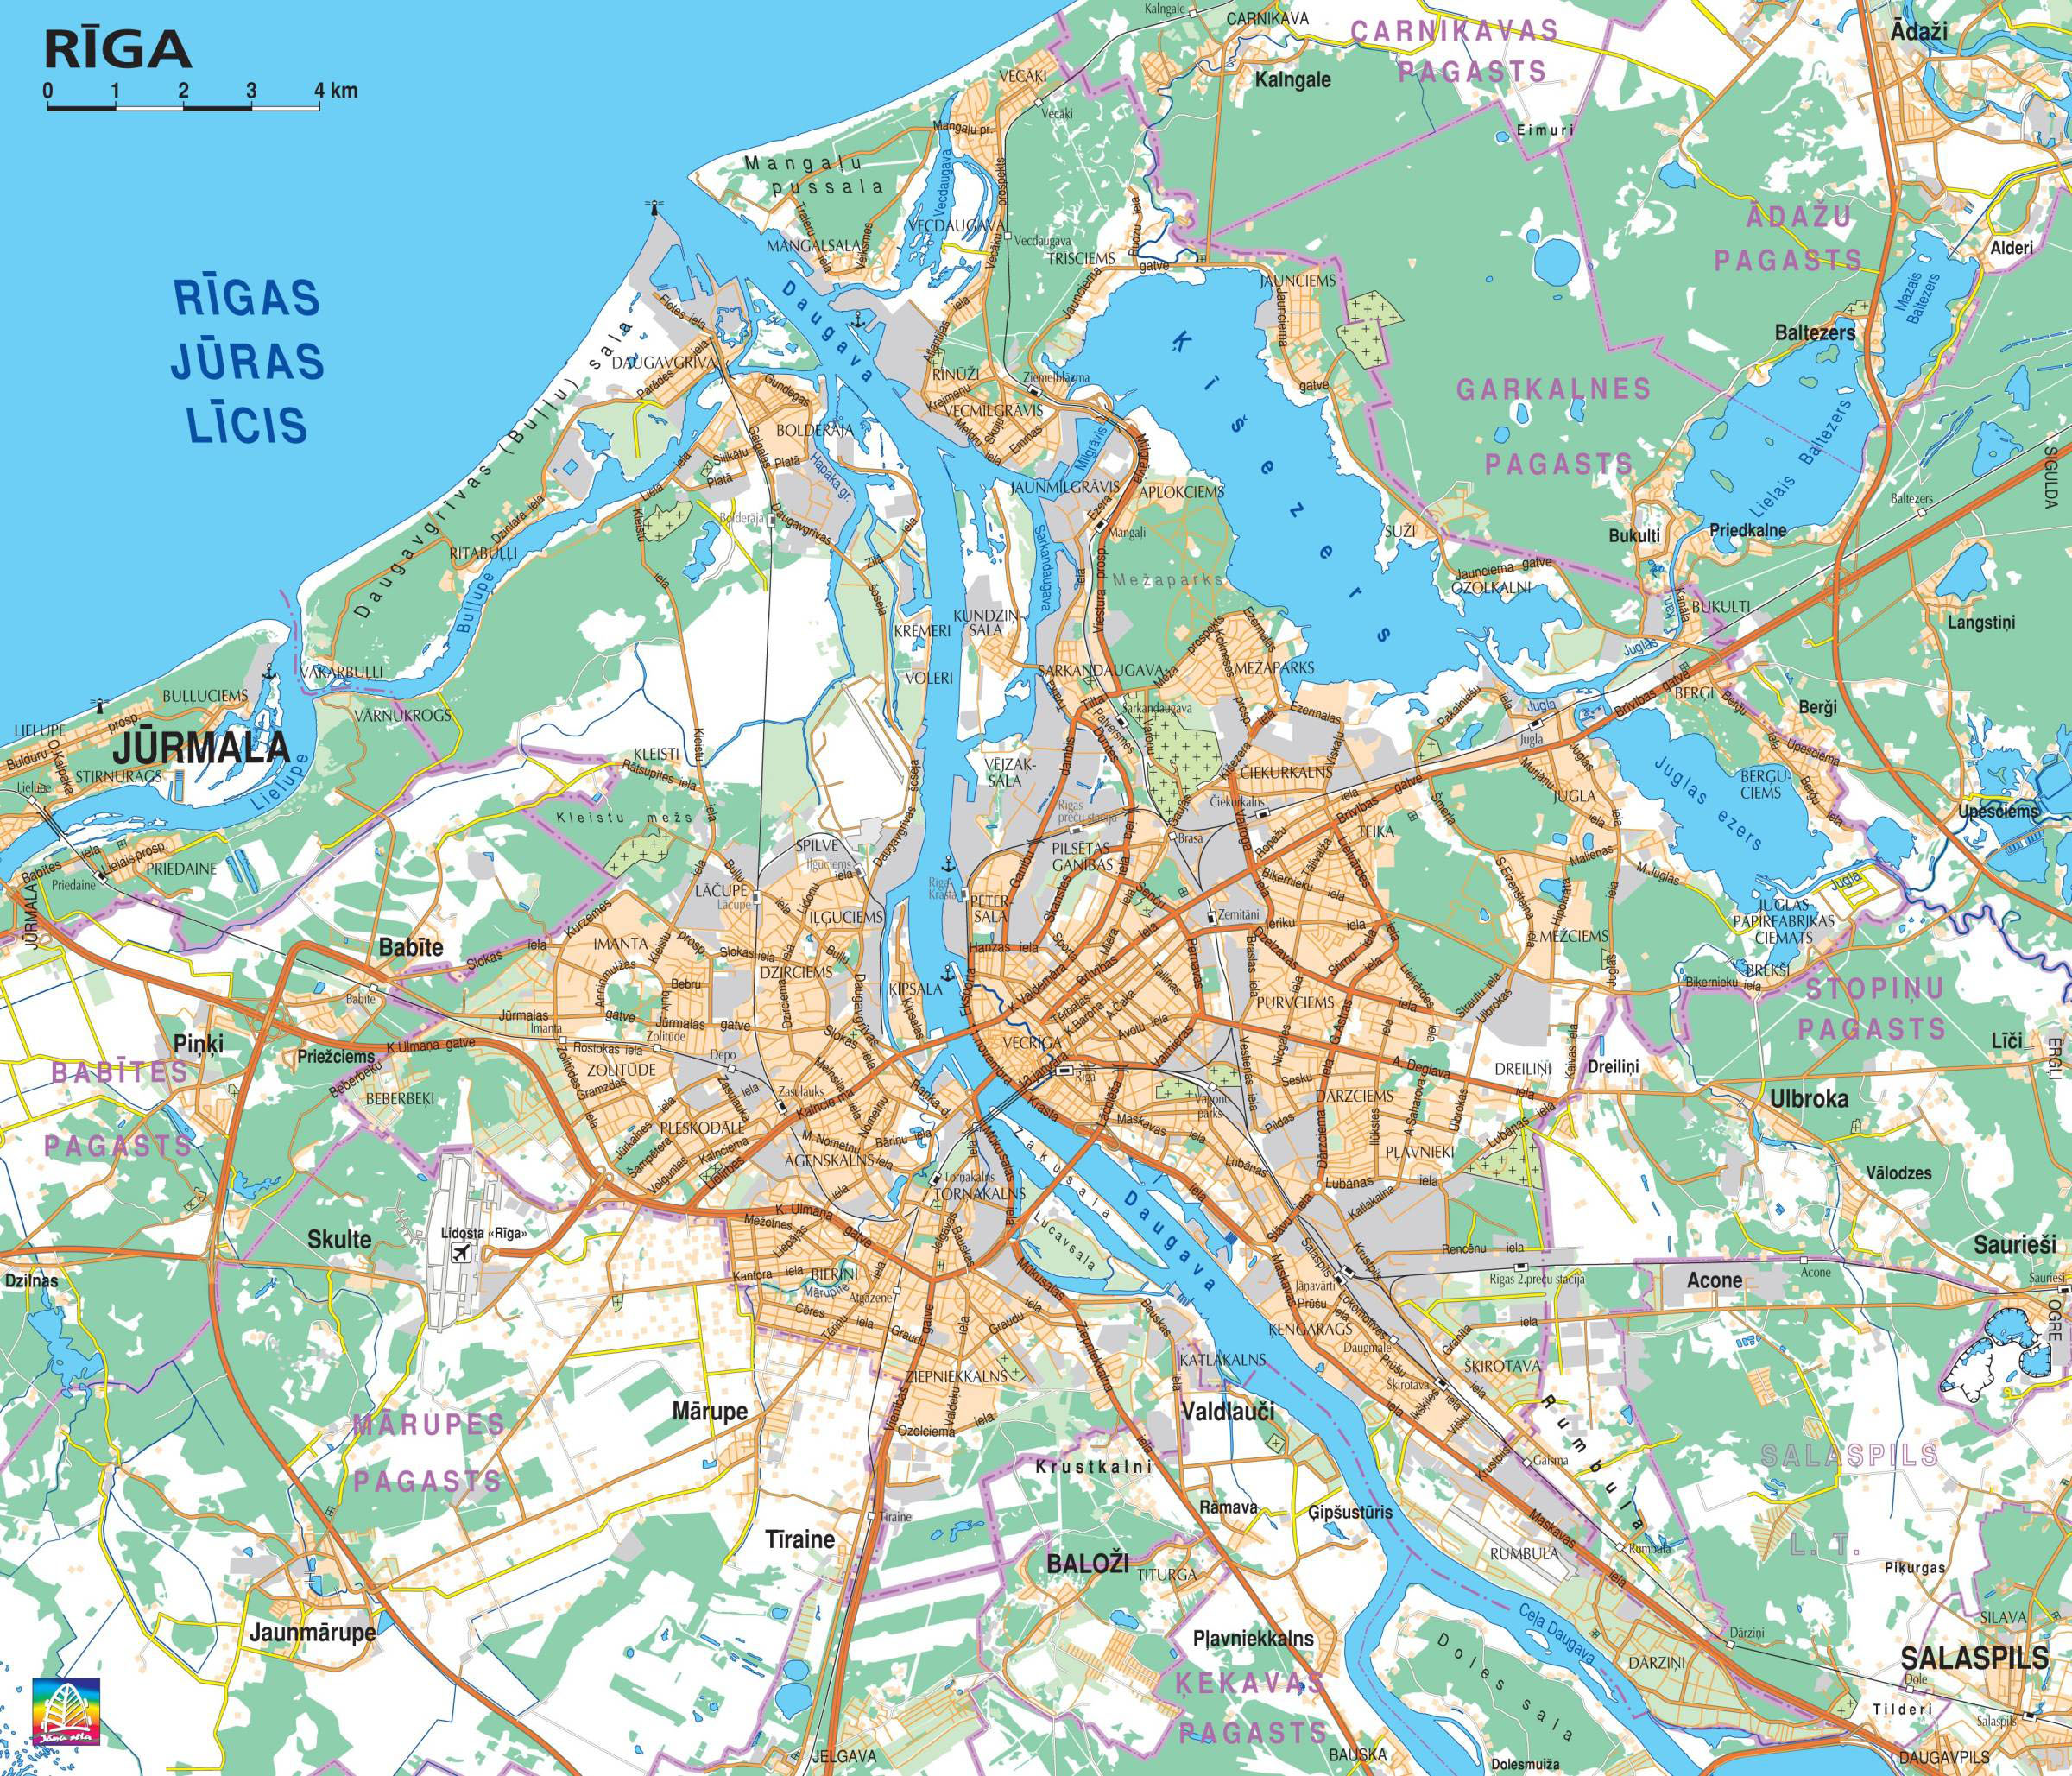 Detailed road map of Riga Riga detailed road map Vidianicom